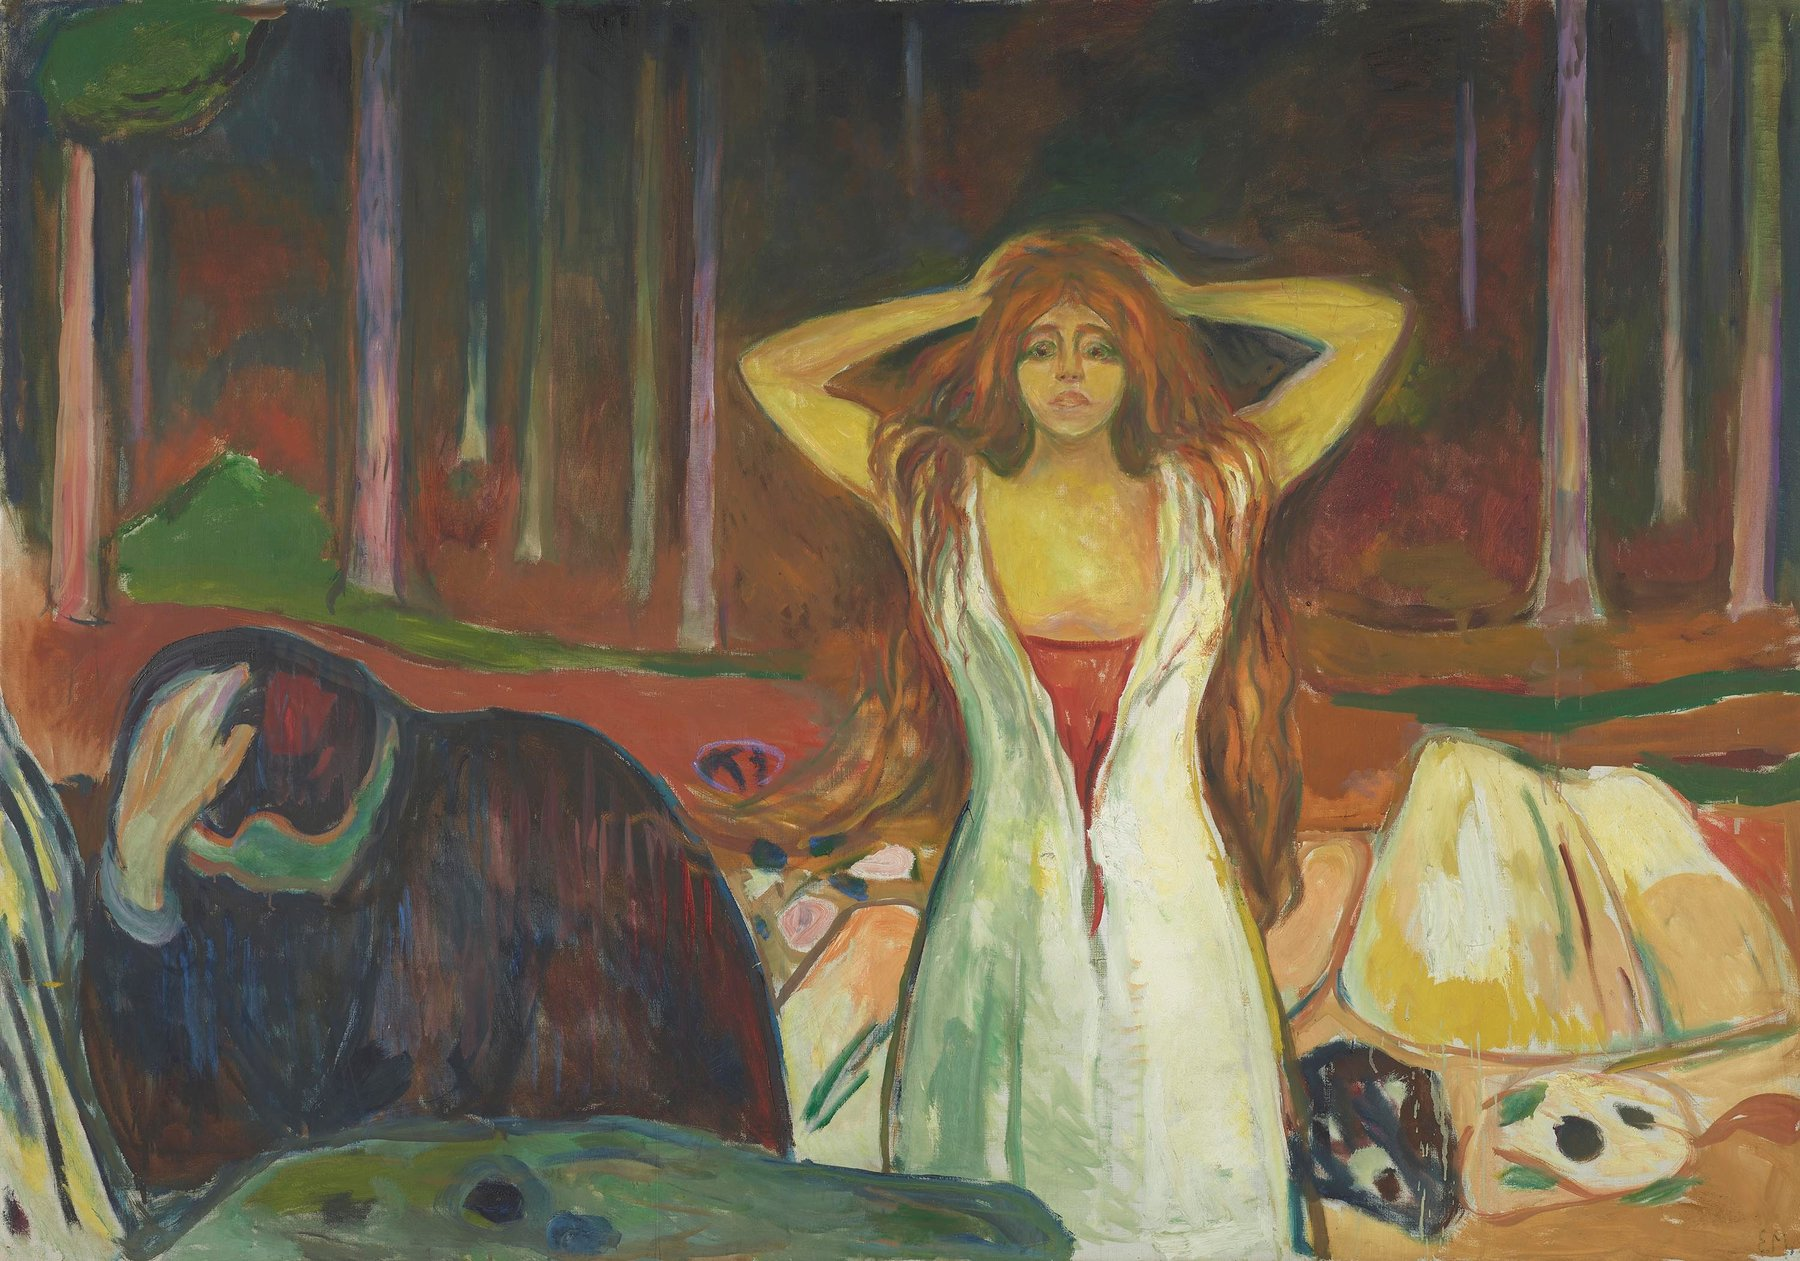 Artwork image, Munch, Ashes